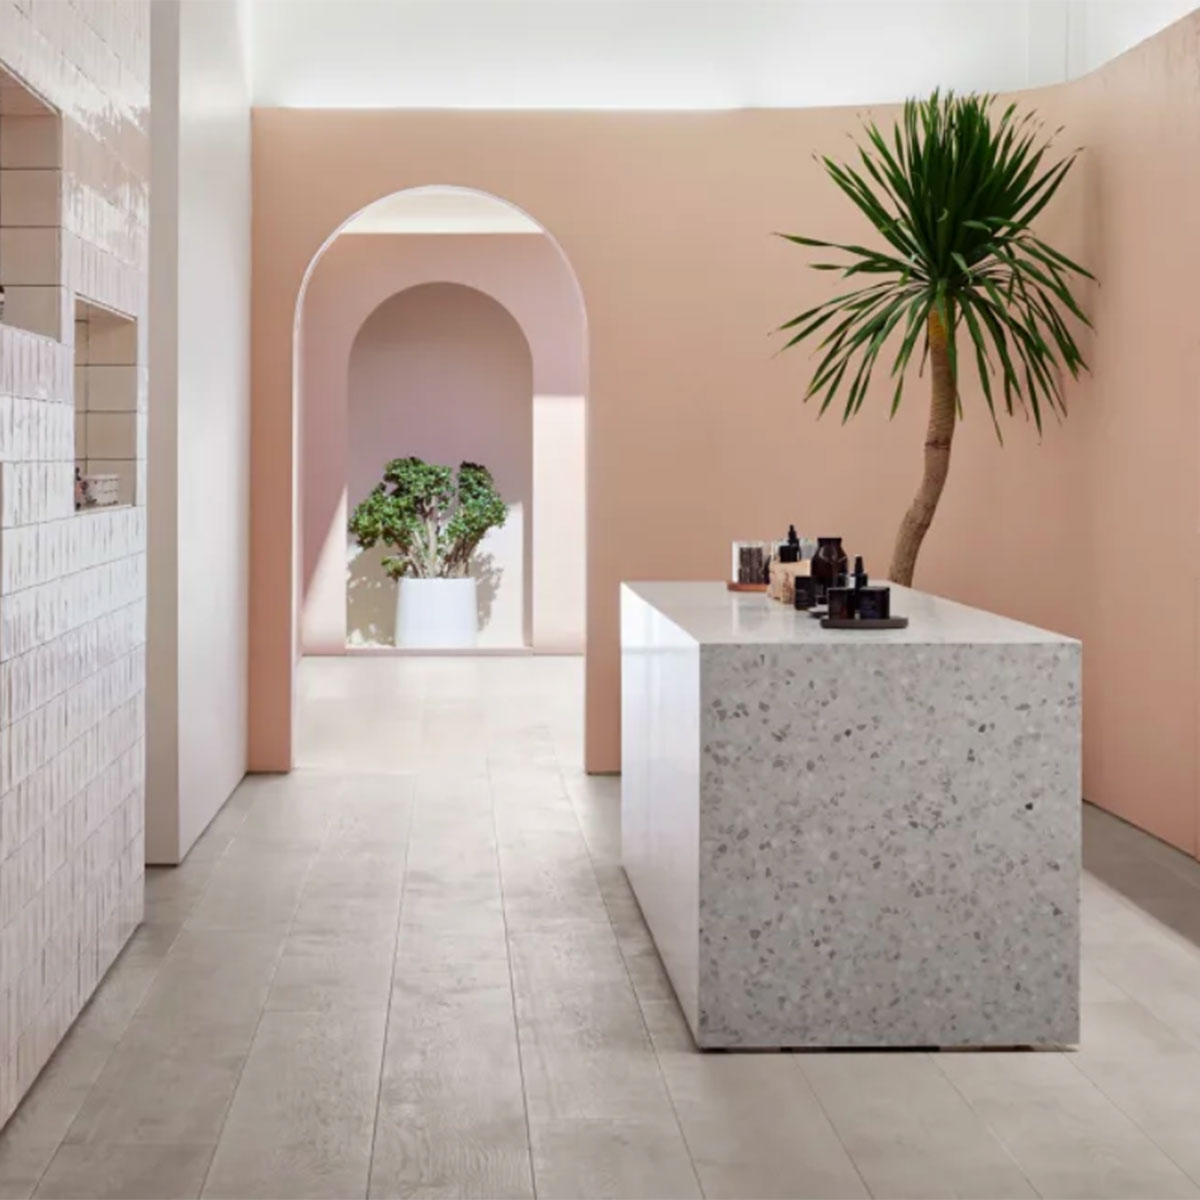 The Online Wellness Retailer Standard Dose Opens its First Retail Store in NoMad